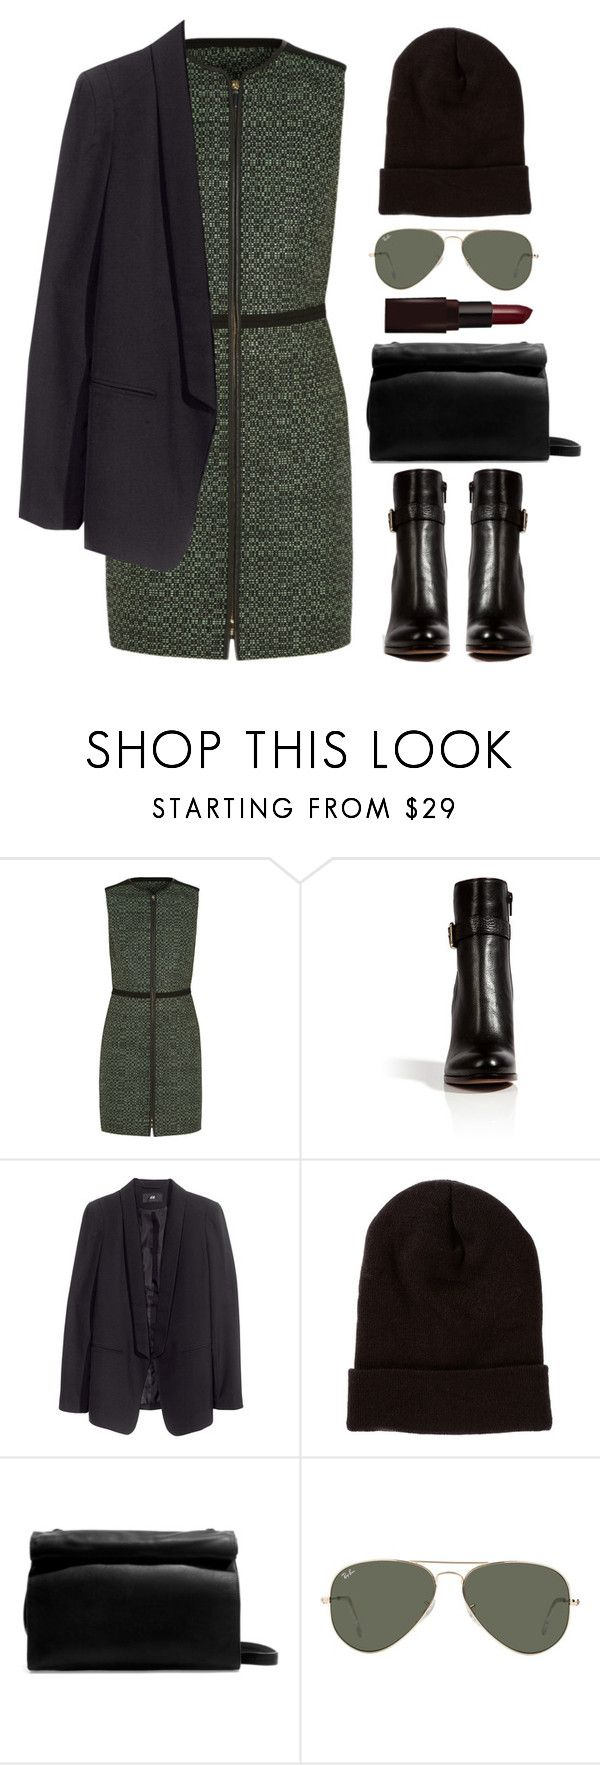 """""""Do the walk"""" by endimanche ❤ liked on Polyvore featuring M Missoni, L'Autre Chose, H&M, American Apparel, Zara, Ray-Ban and Laura Mercier"""